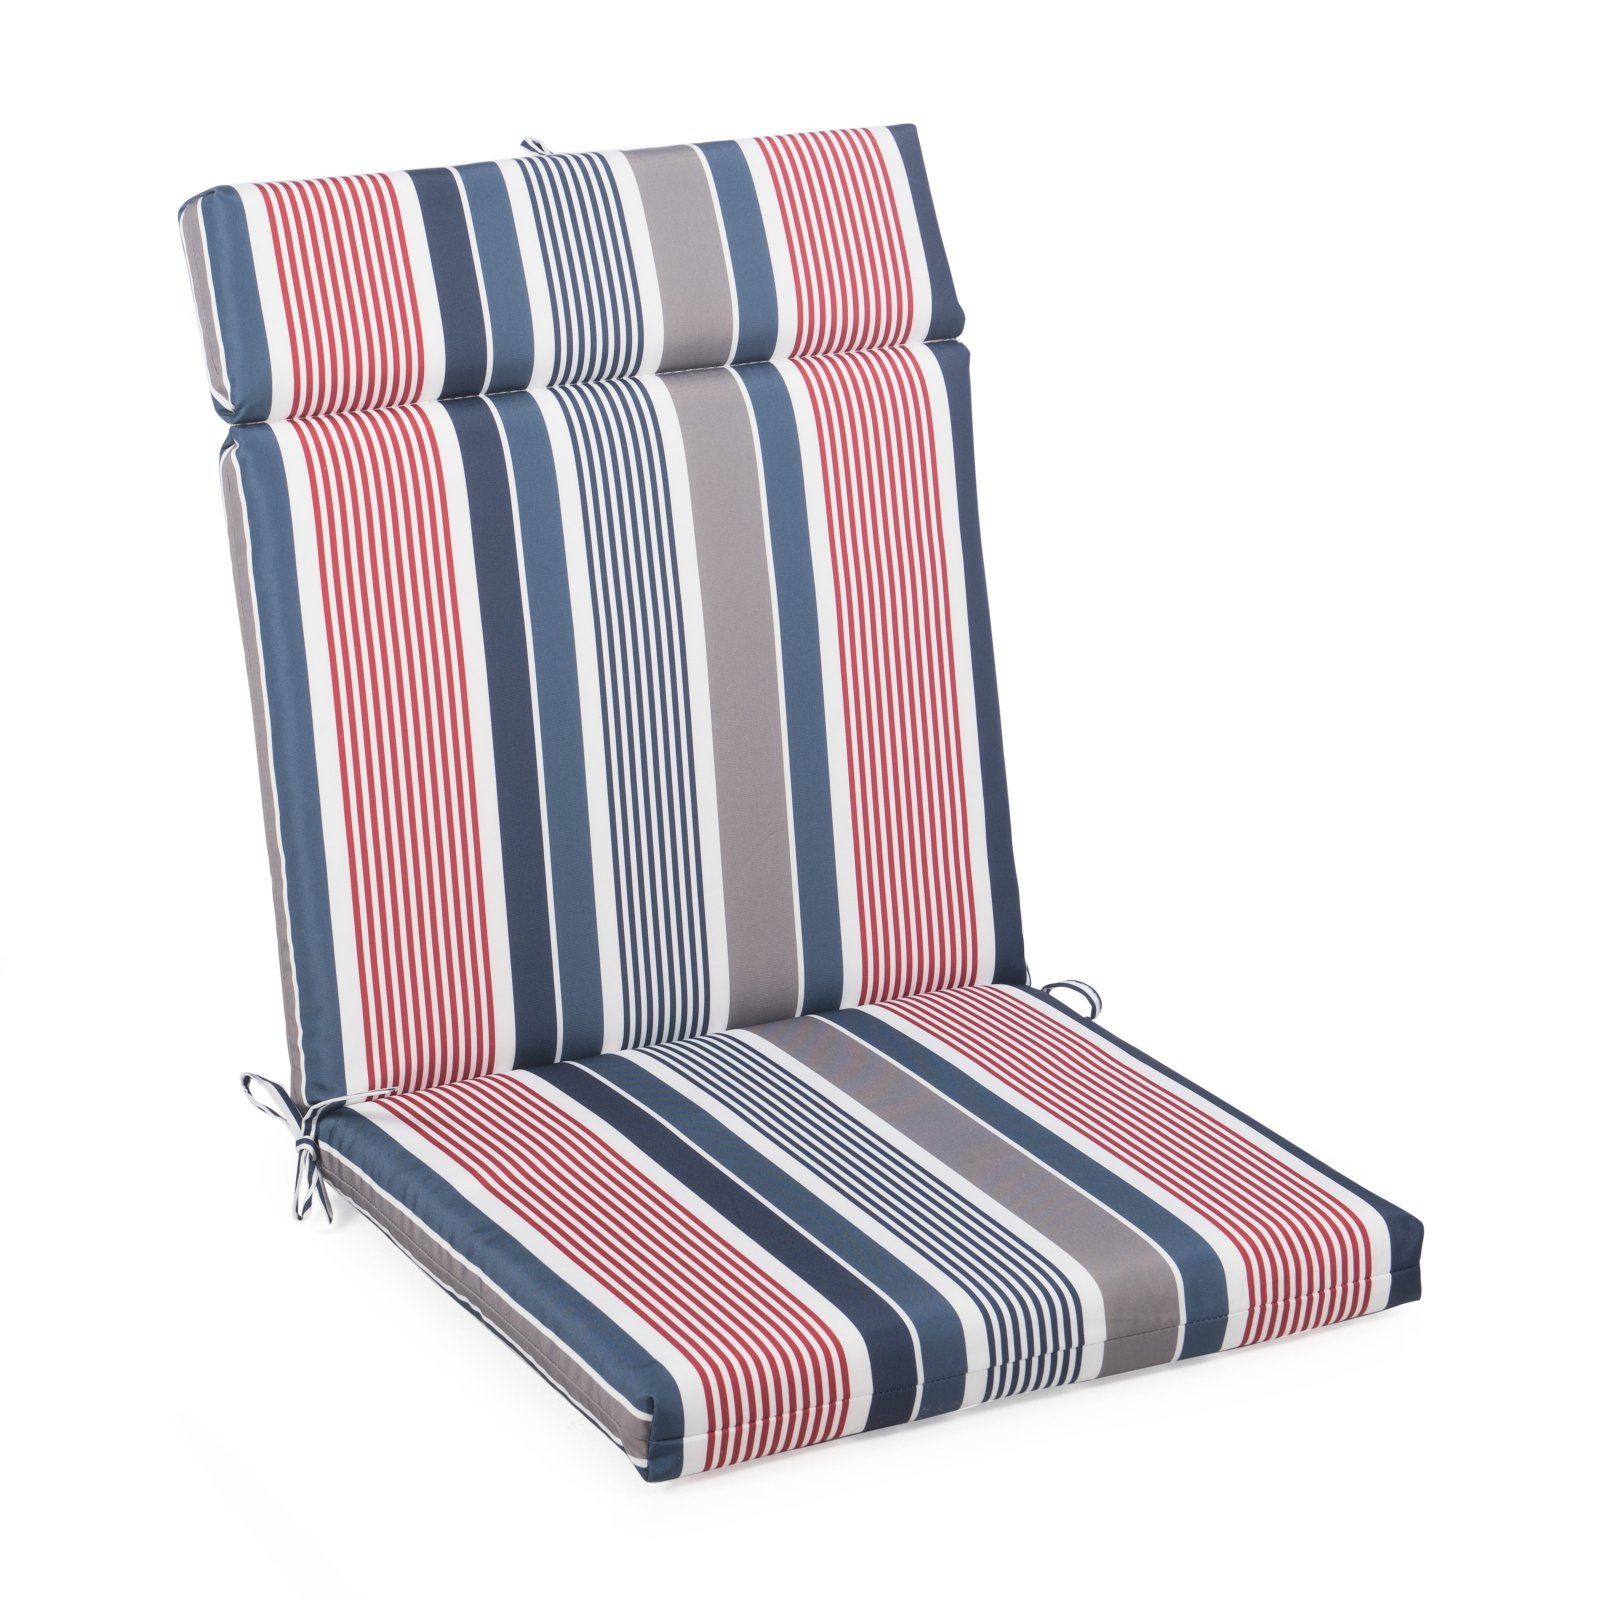 Coral Coast Classic French Edge Cartridge Hinged Seat and Back Chair Cushion